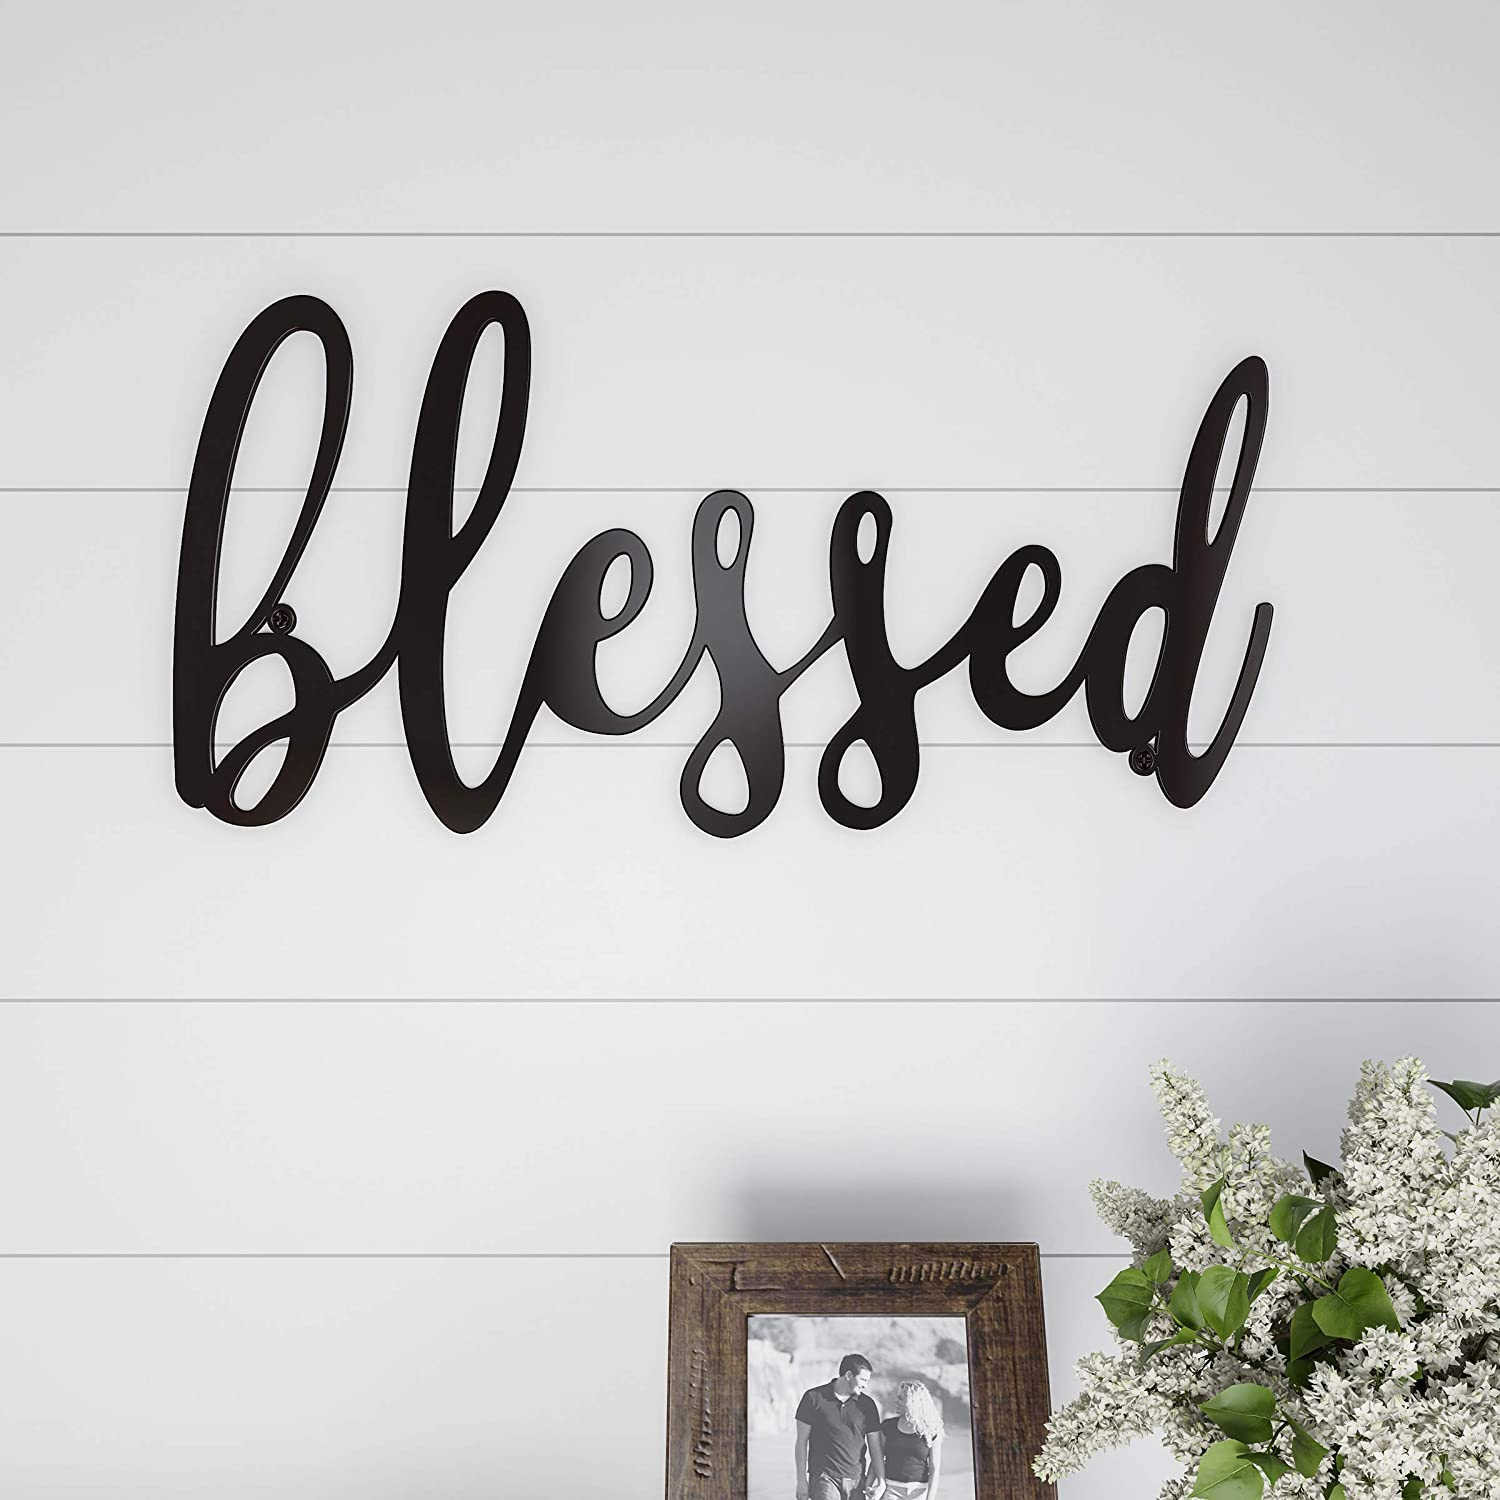 Lavish Home Metal Cutout-Blessed Wall Sign-3D Word Art Home Accent Decor-Perfect for Modern Rustic or Vintage Farmhouse Style